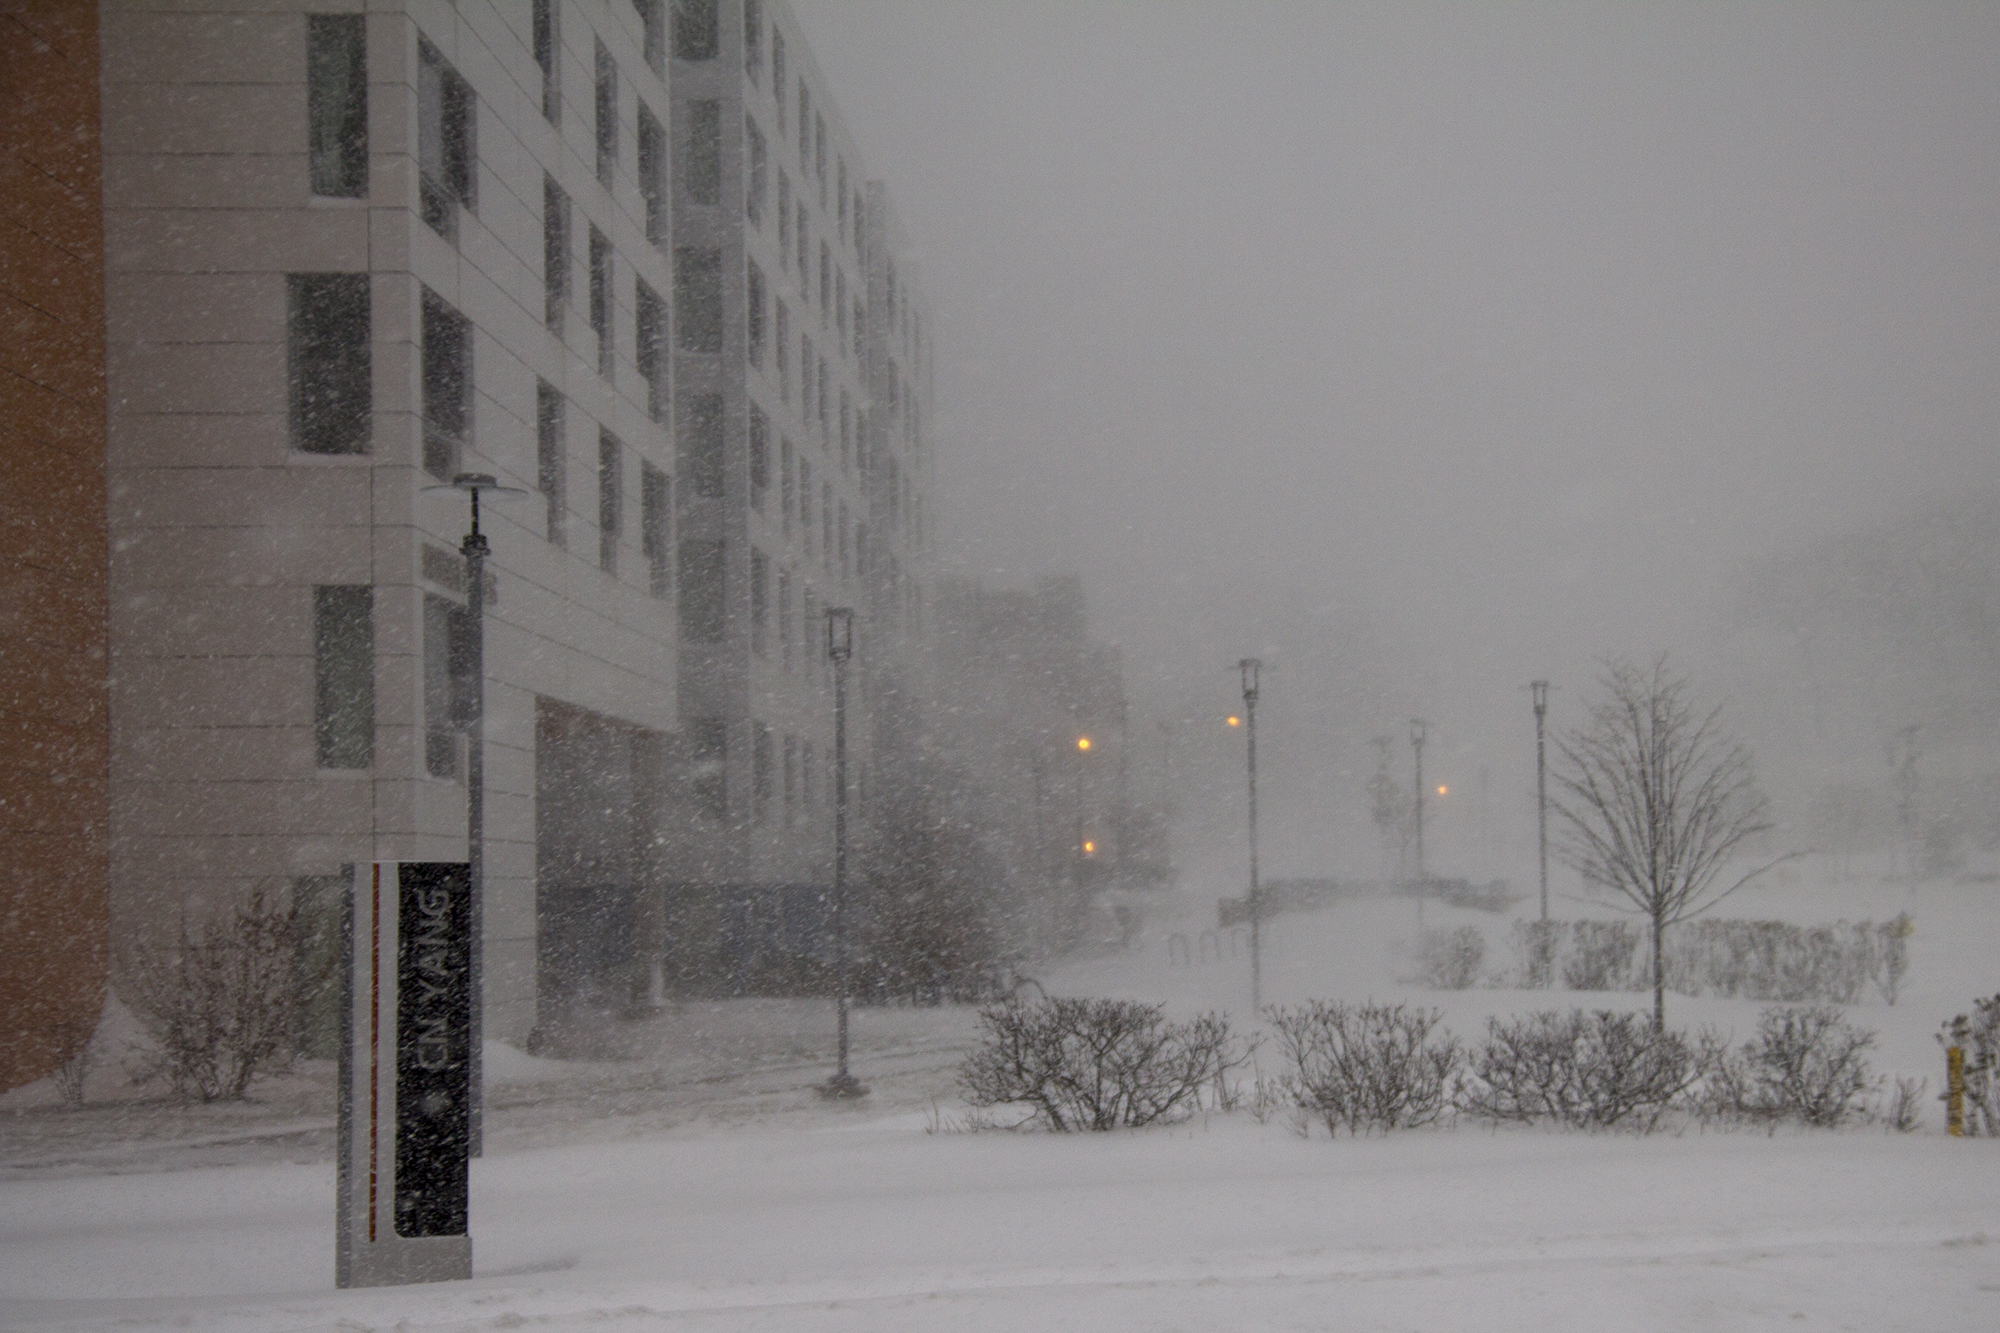 Blizzard conditions near the Nobel Halls.  ERIC SCHMID/THE STATESMAN